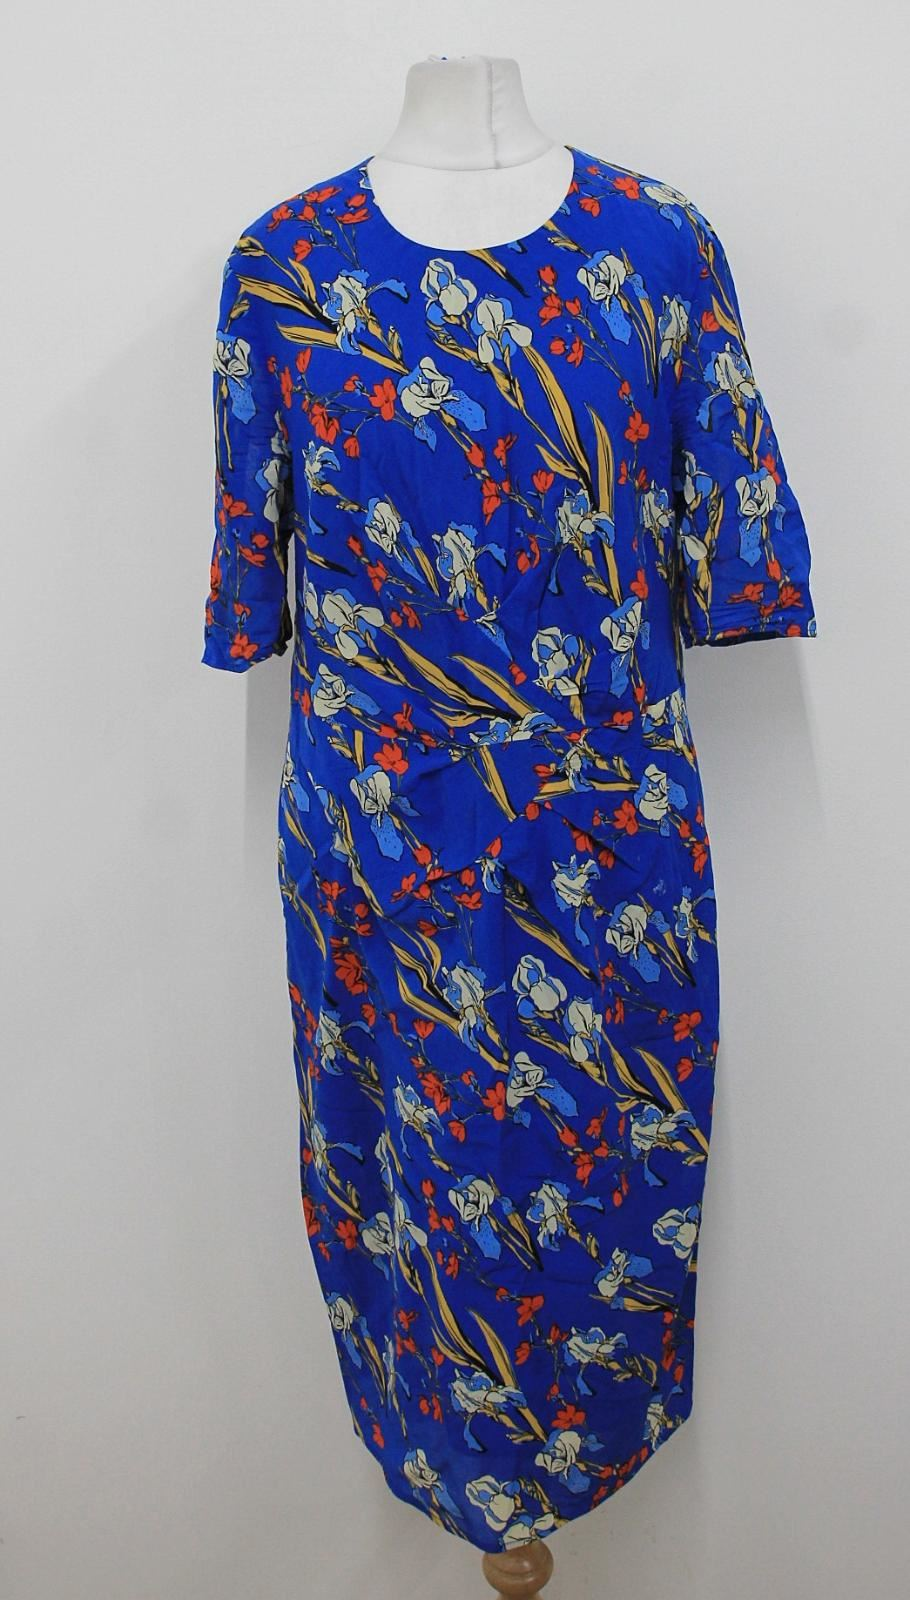 WHISTLES-Ladies-Blue-Floral-Print-Short-Sleeved-Ruched-Front-Shift-Dress-UK14